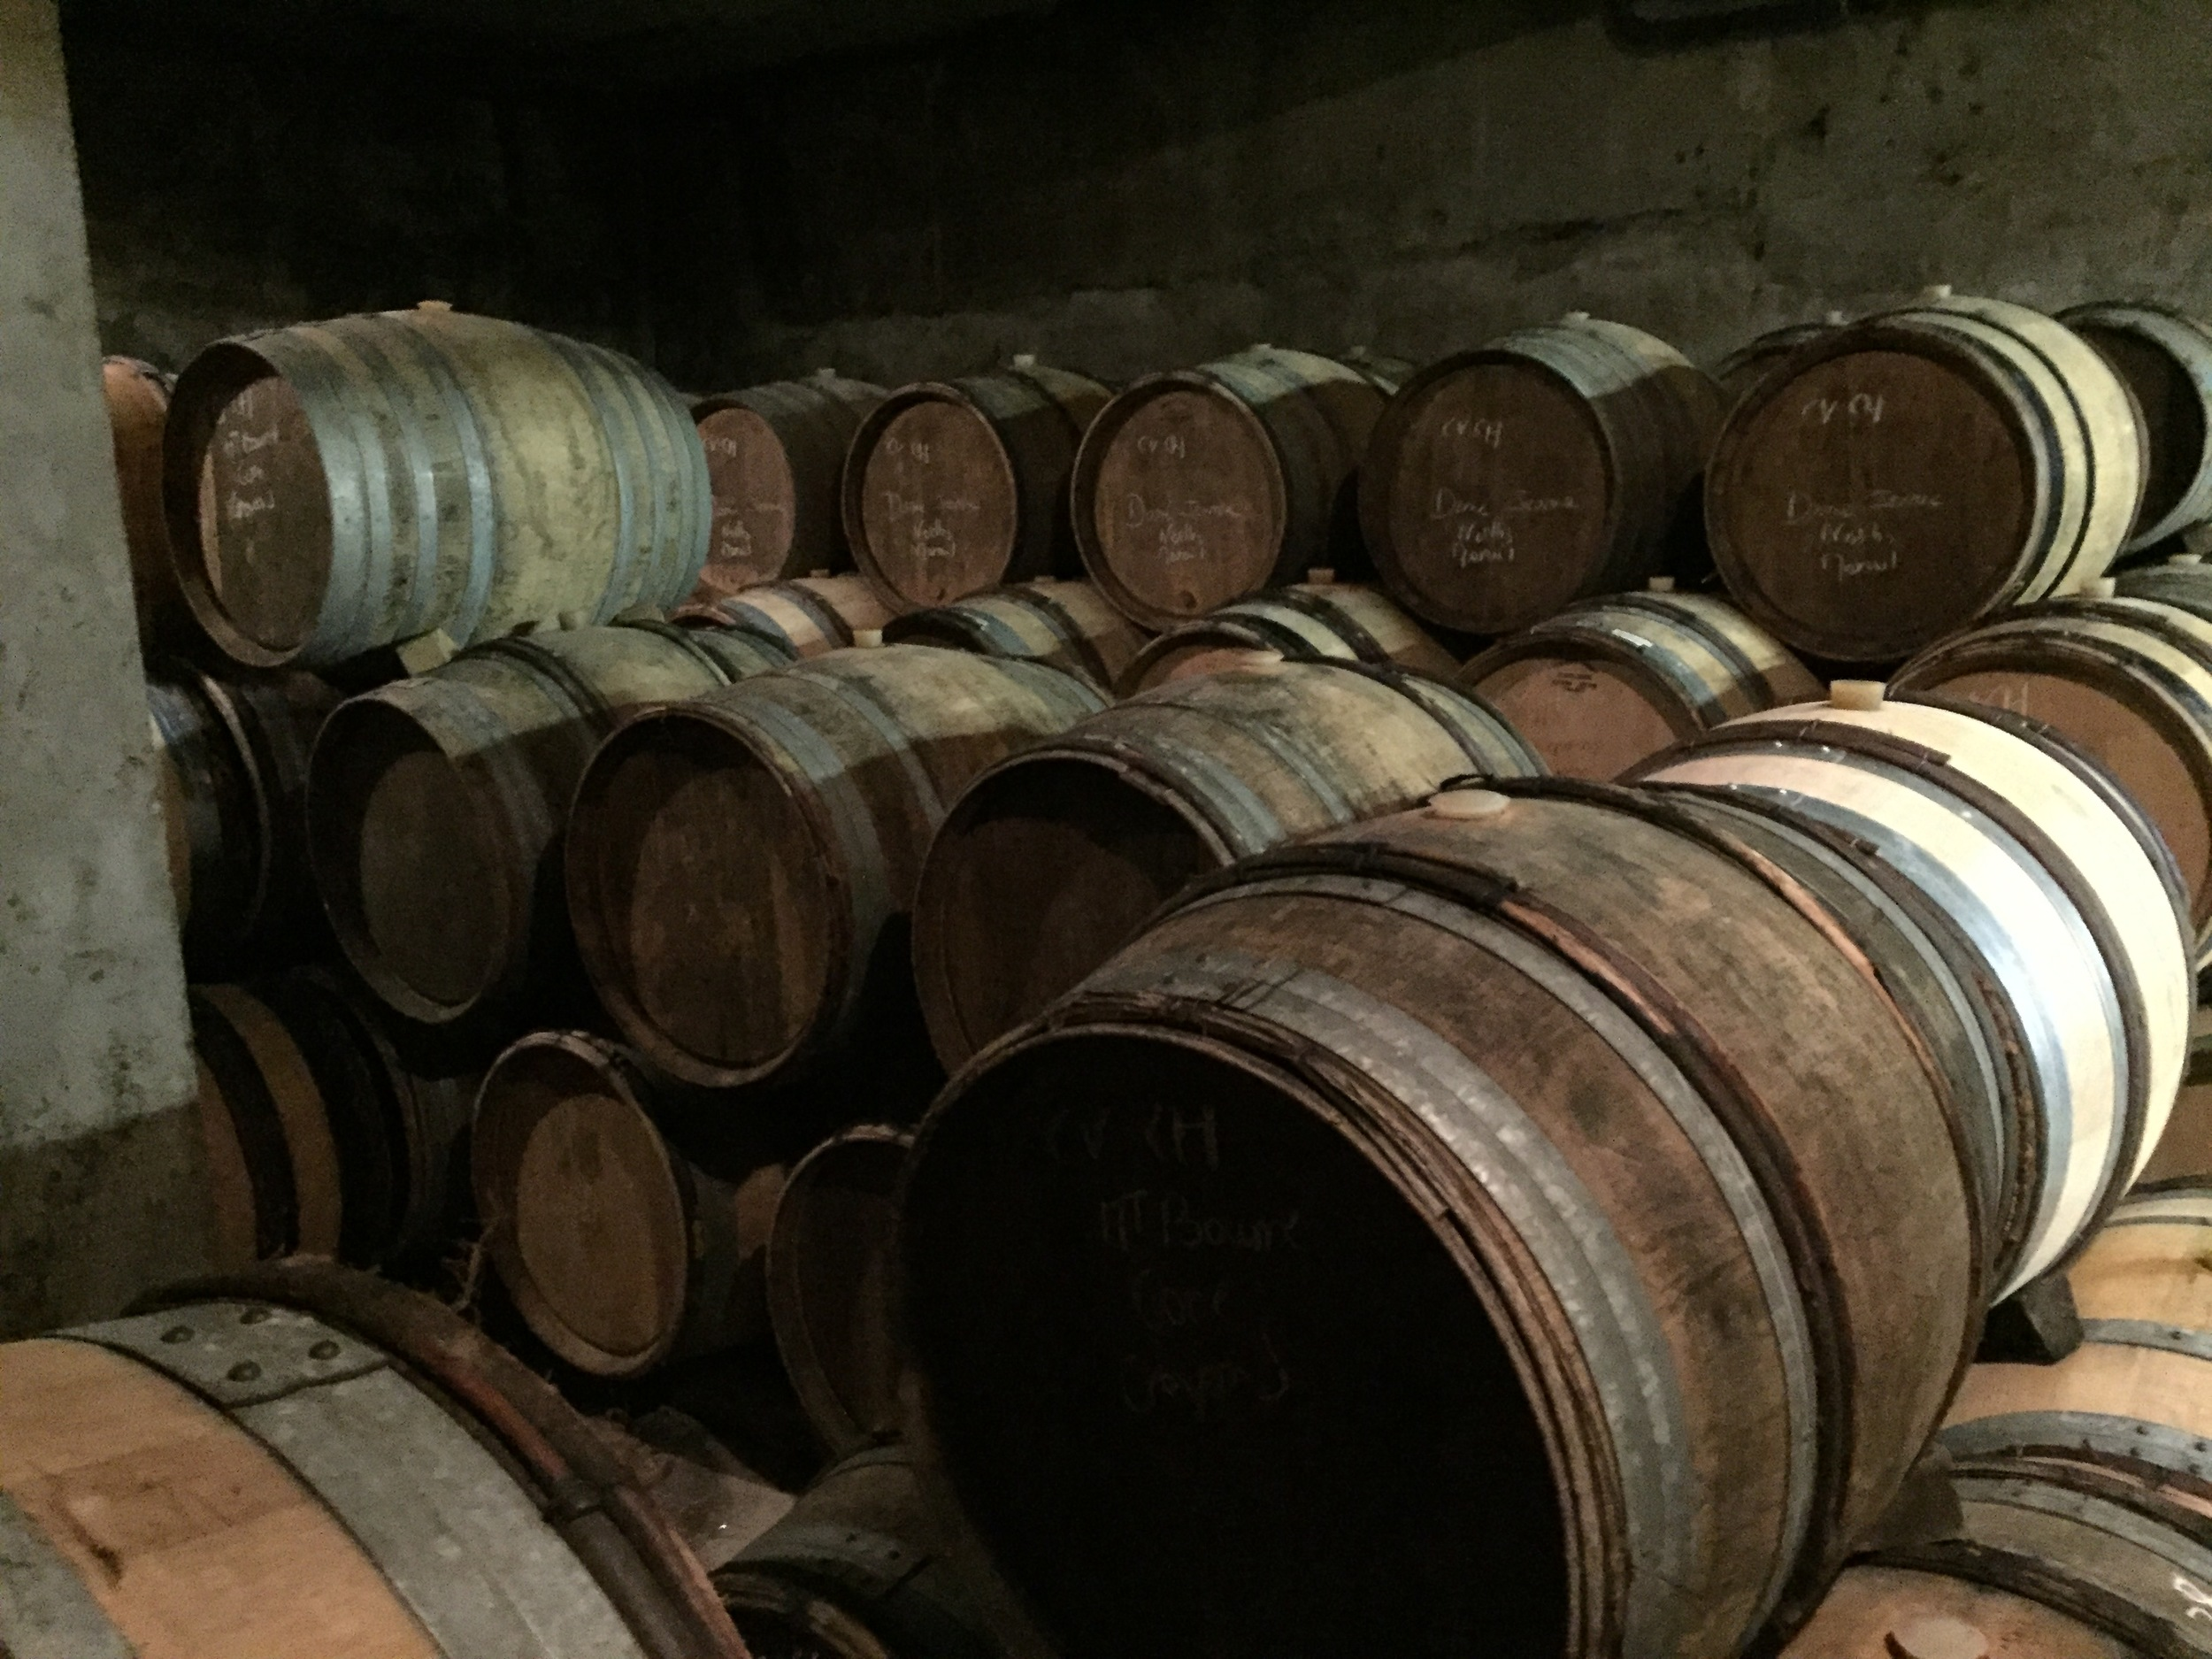 Just a few of the choices in the Laherte cellar...